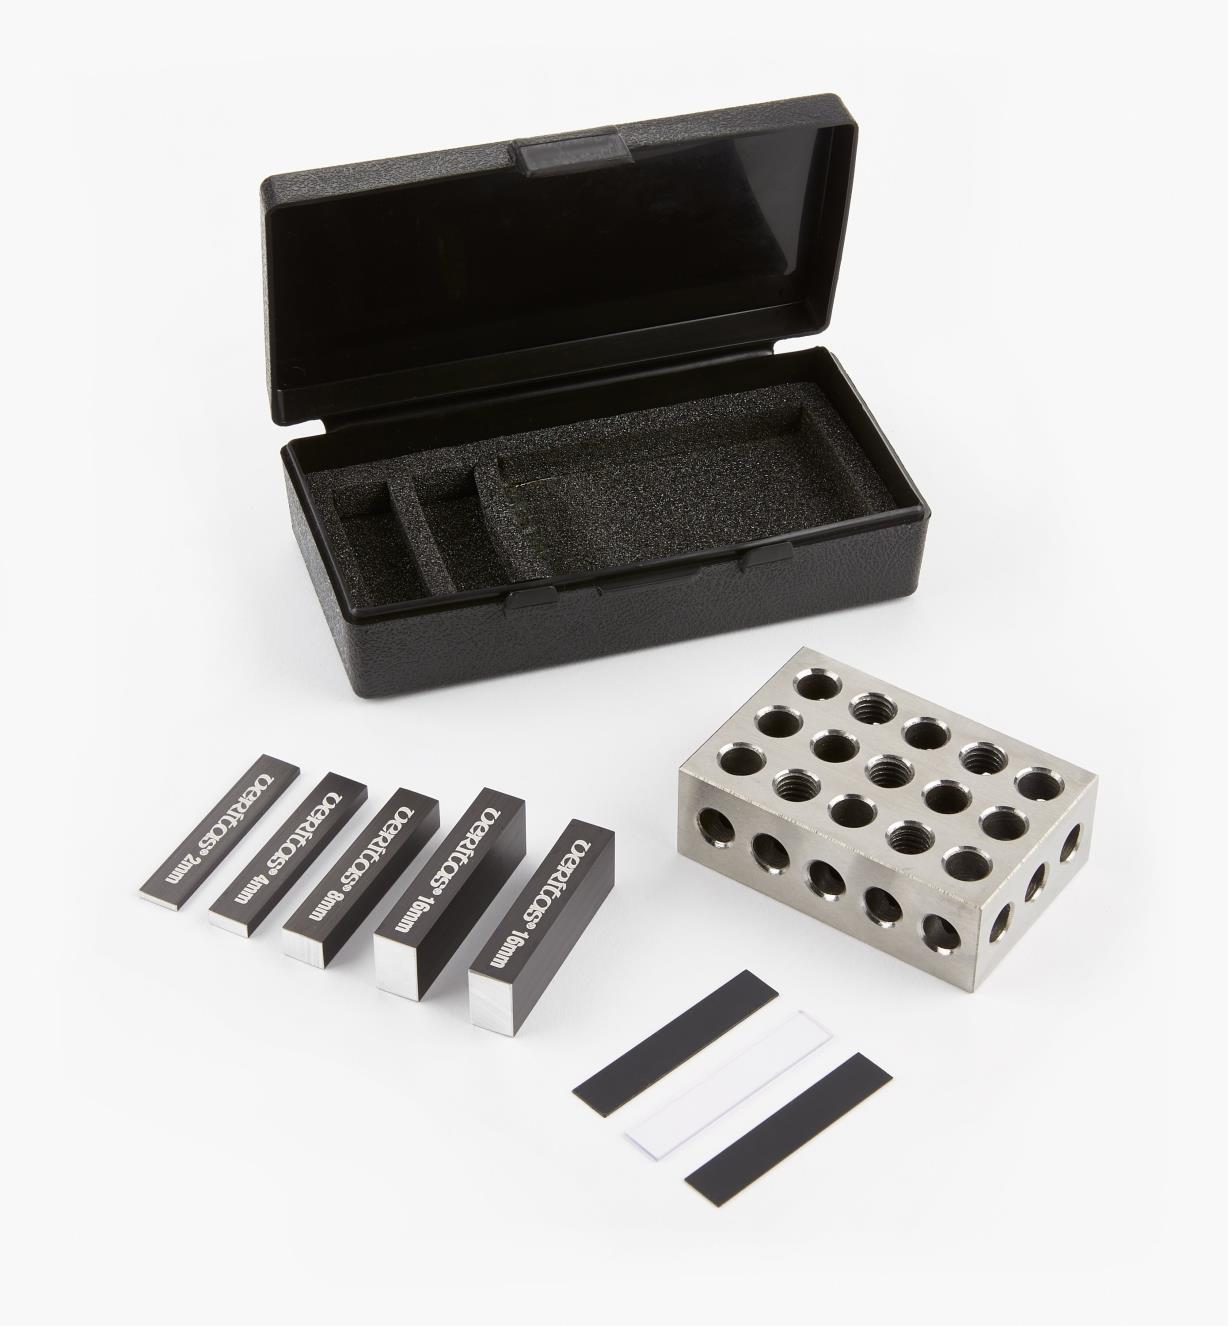 05N5812 - Veritas 9-Piece Set-Up Blocks, Metric Set